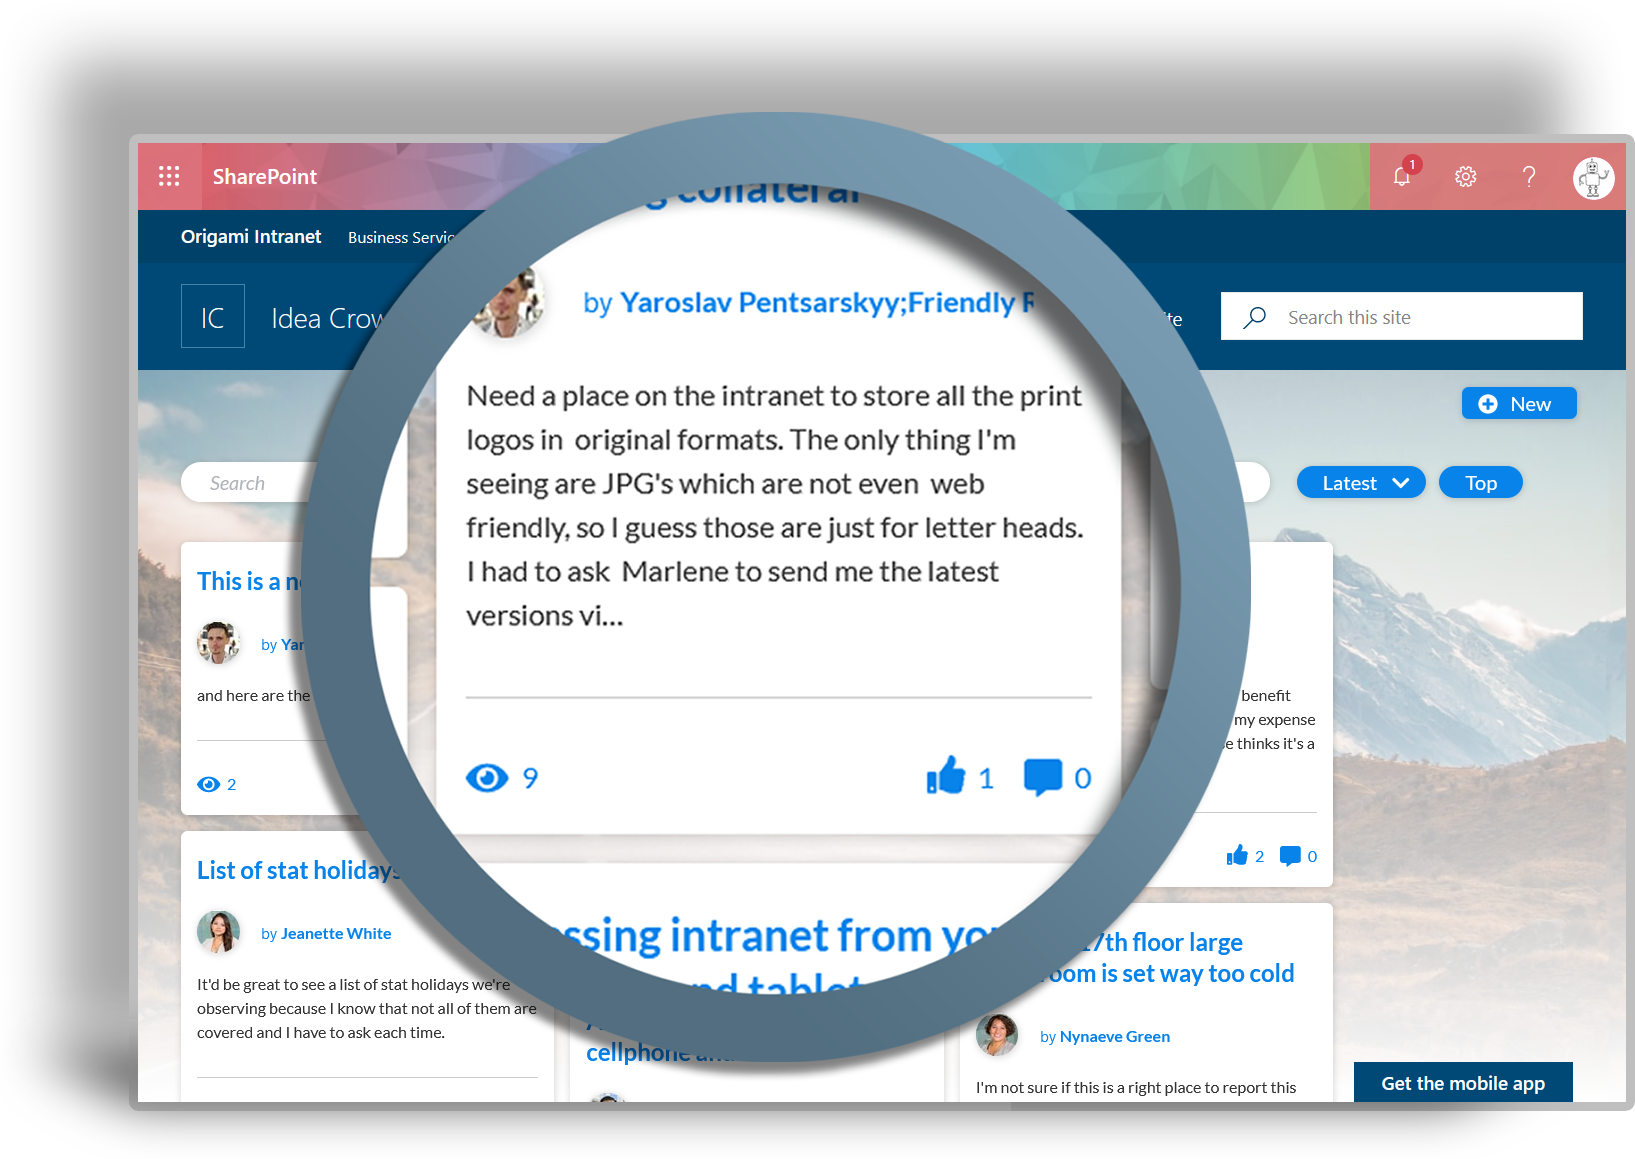 Engage Employees Instantly with an Office 365 Intranet - Origami intranet encourages employee engagement, interaction and collaboration across your workplace.Origami delivers engaging tools, such as:- Employee Bulletin Board- Idea Crowdsourcing- Employee Polls- Fully Responsive Mobile Intranet